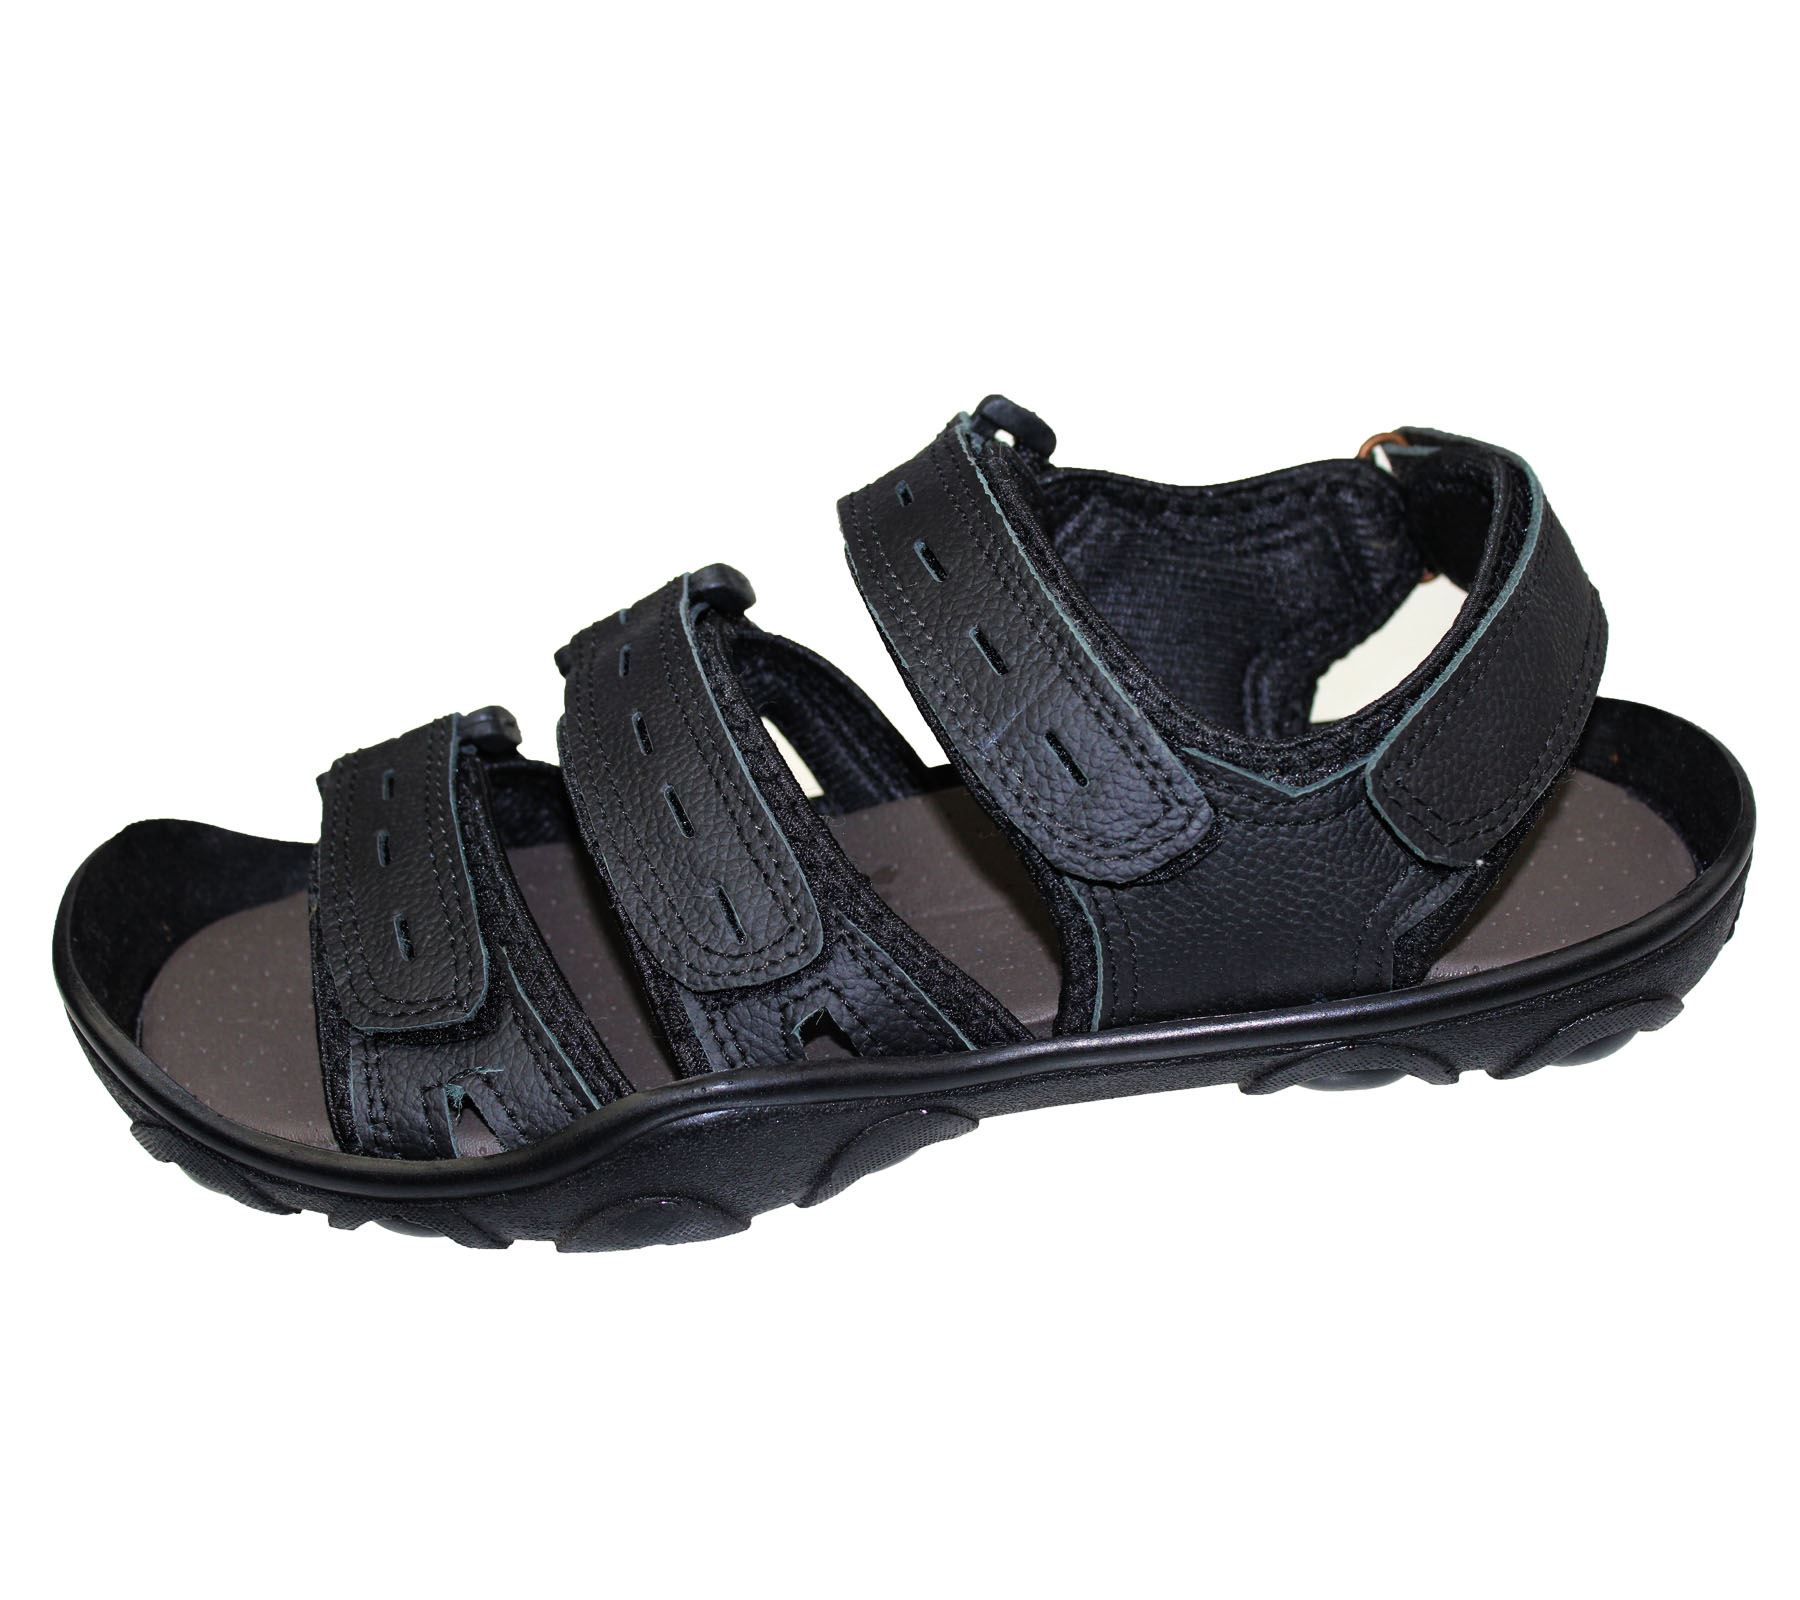 Cover his summer essentials with a pair of boys sandals. Our range of slip on and easy fasten summer shoes are fun and affordable, UK delivery is free too!